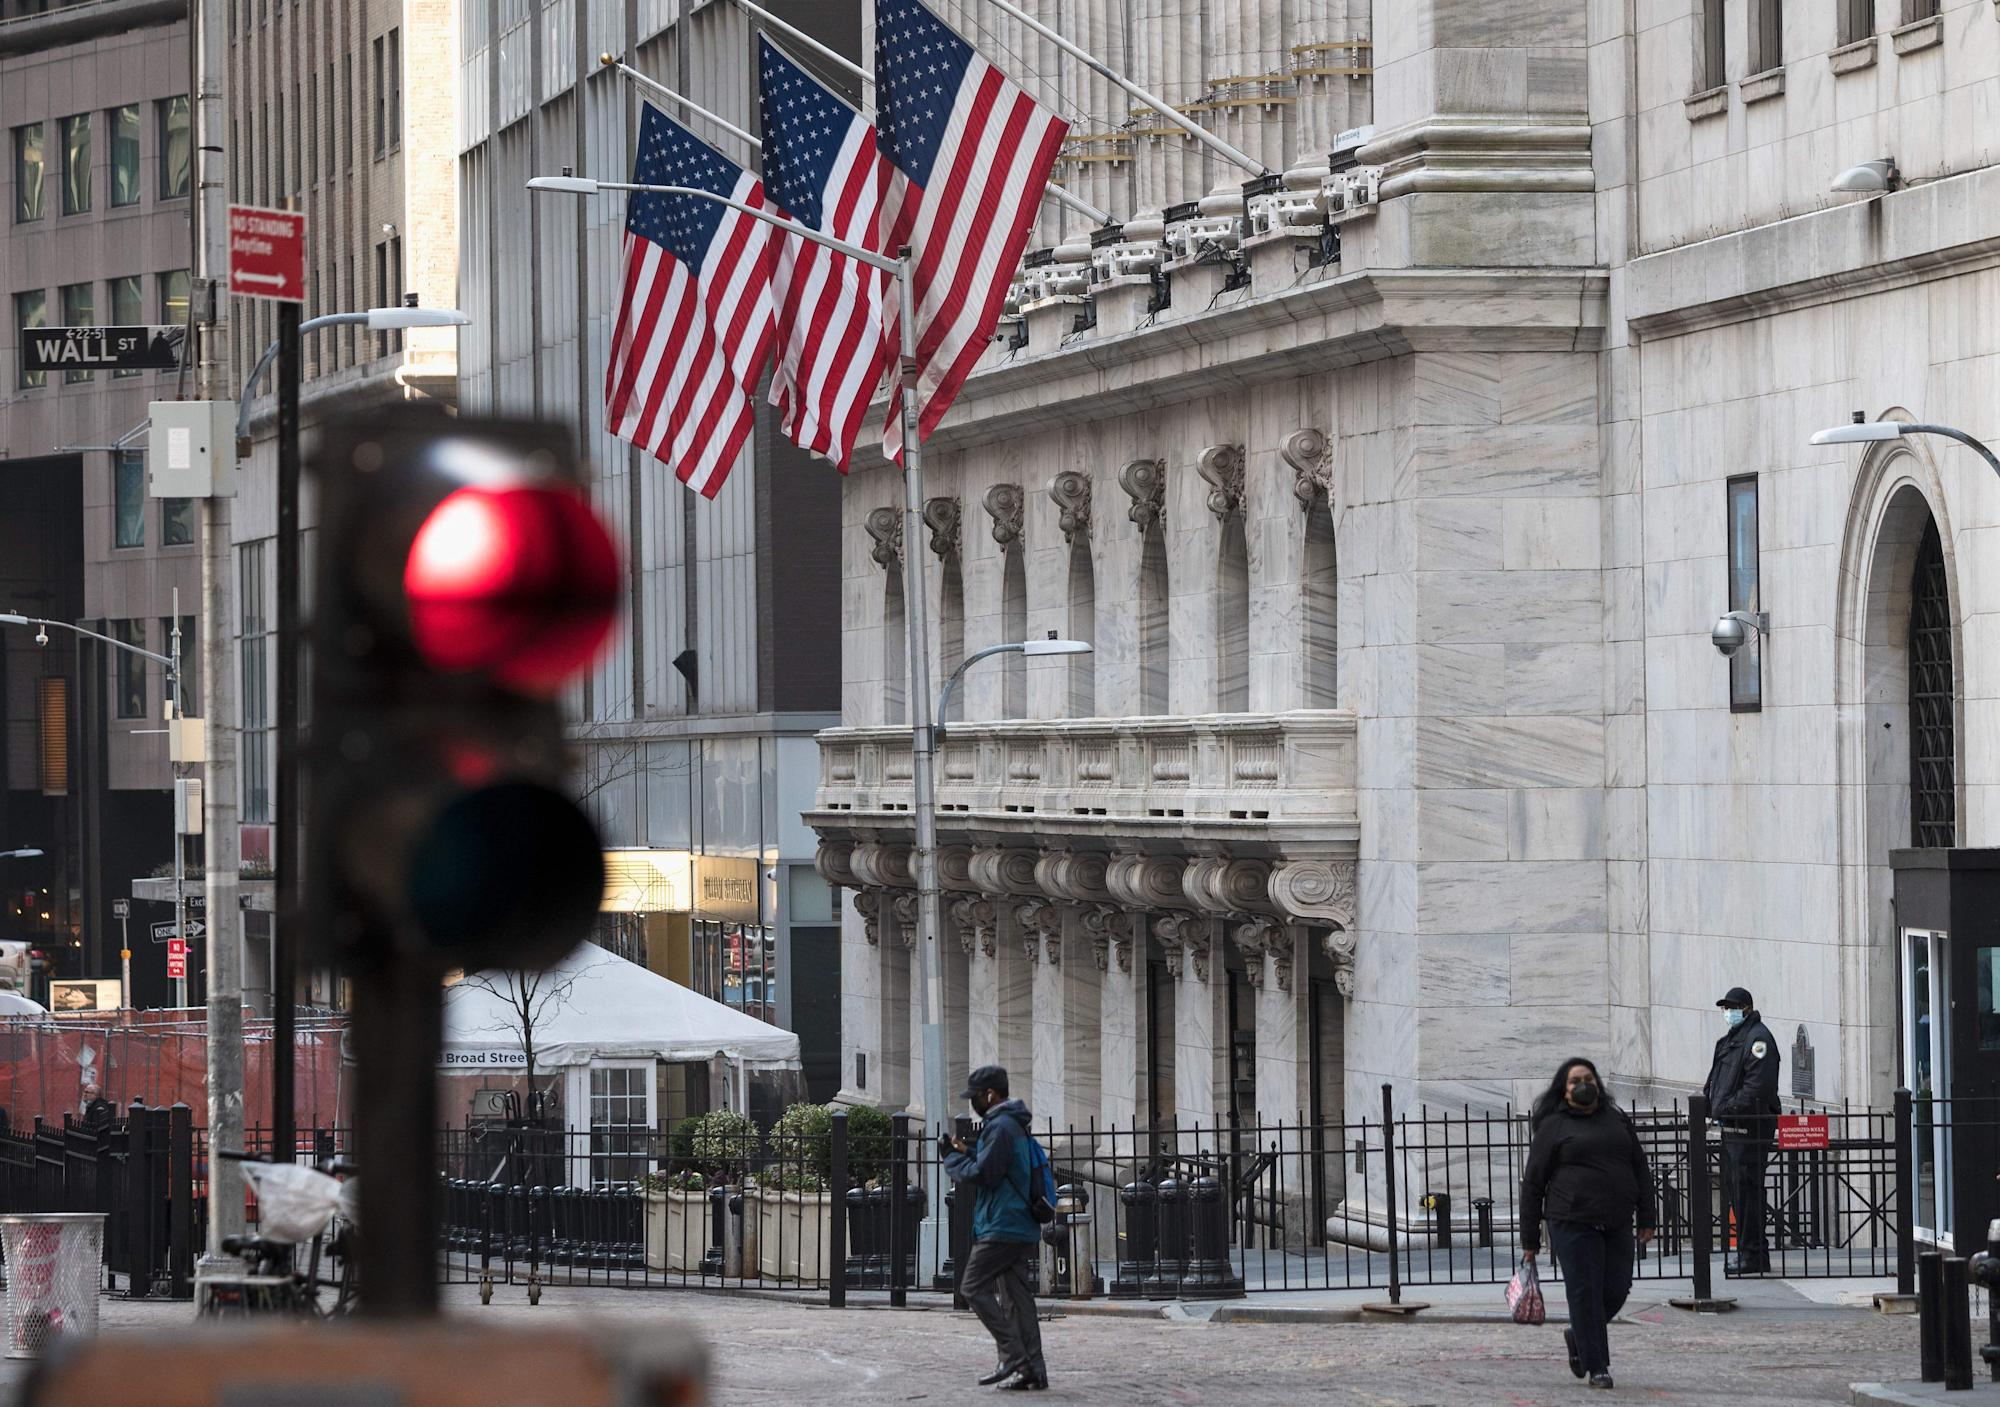 Stock market news live updates: Stocks rise as investors eye upcoming earnings, shake off growth concerns - Yahoo Finance